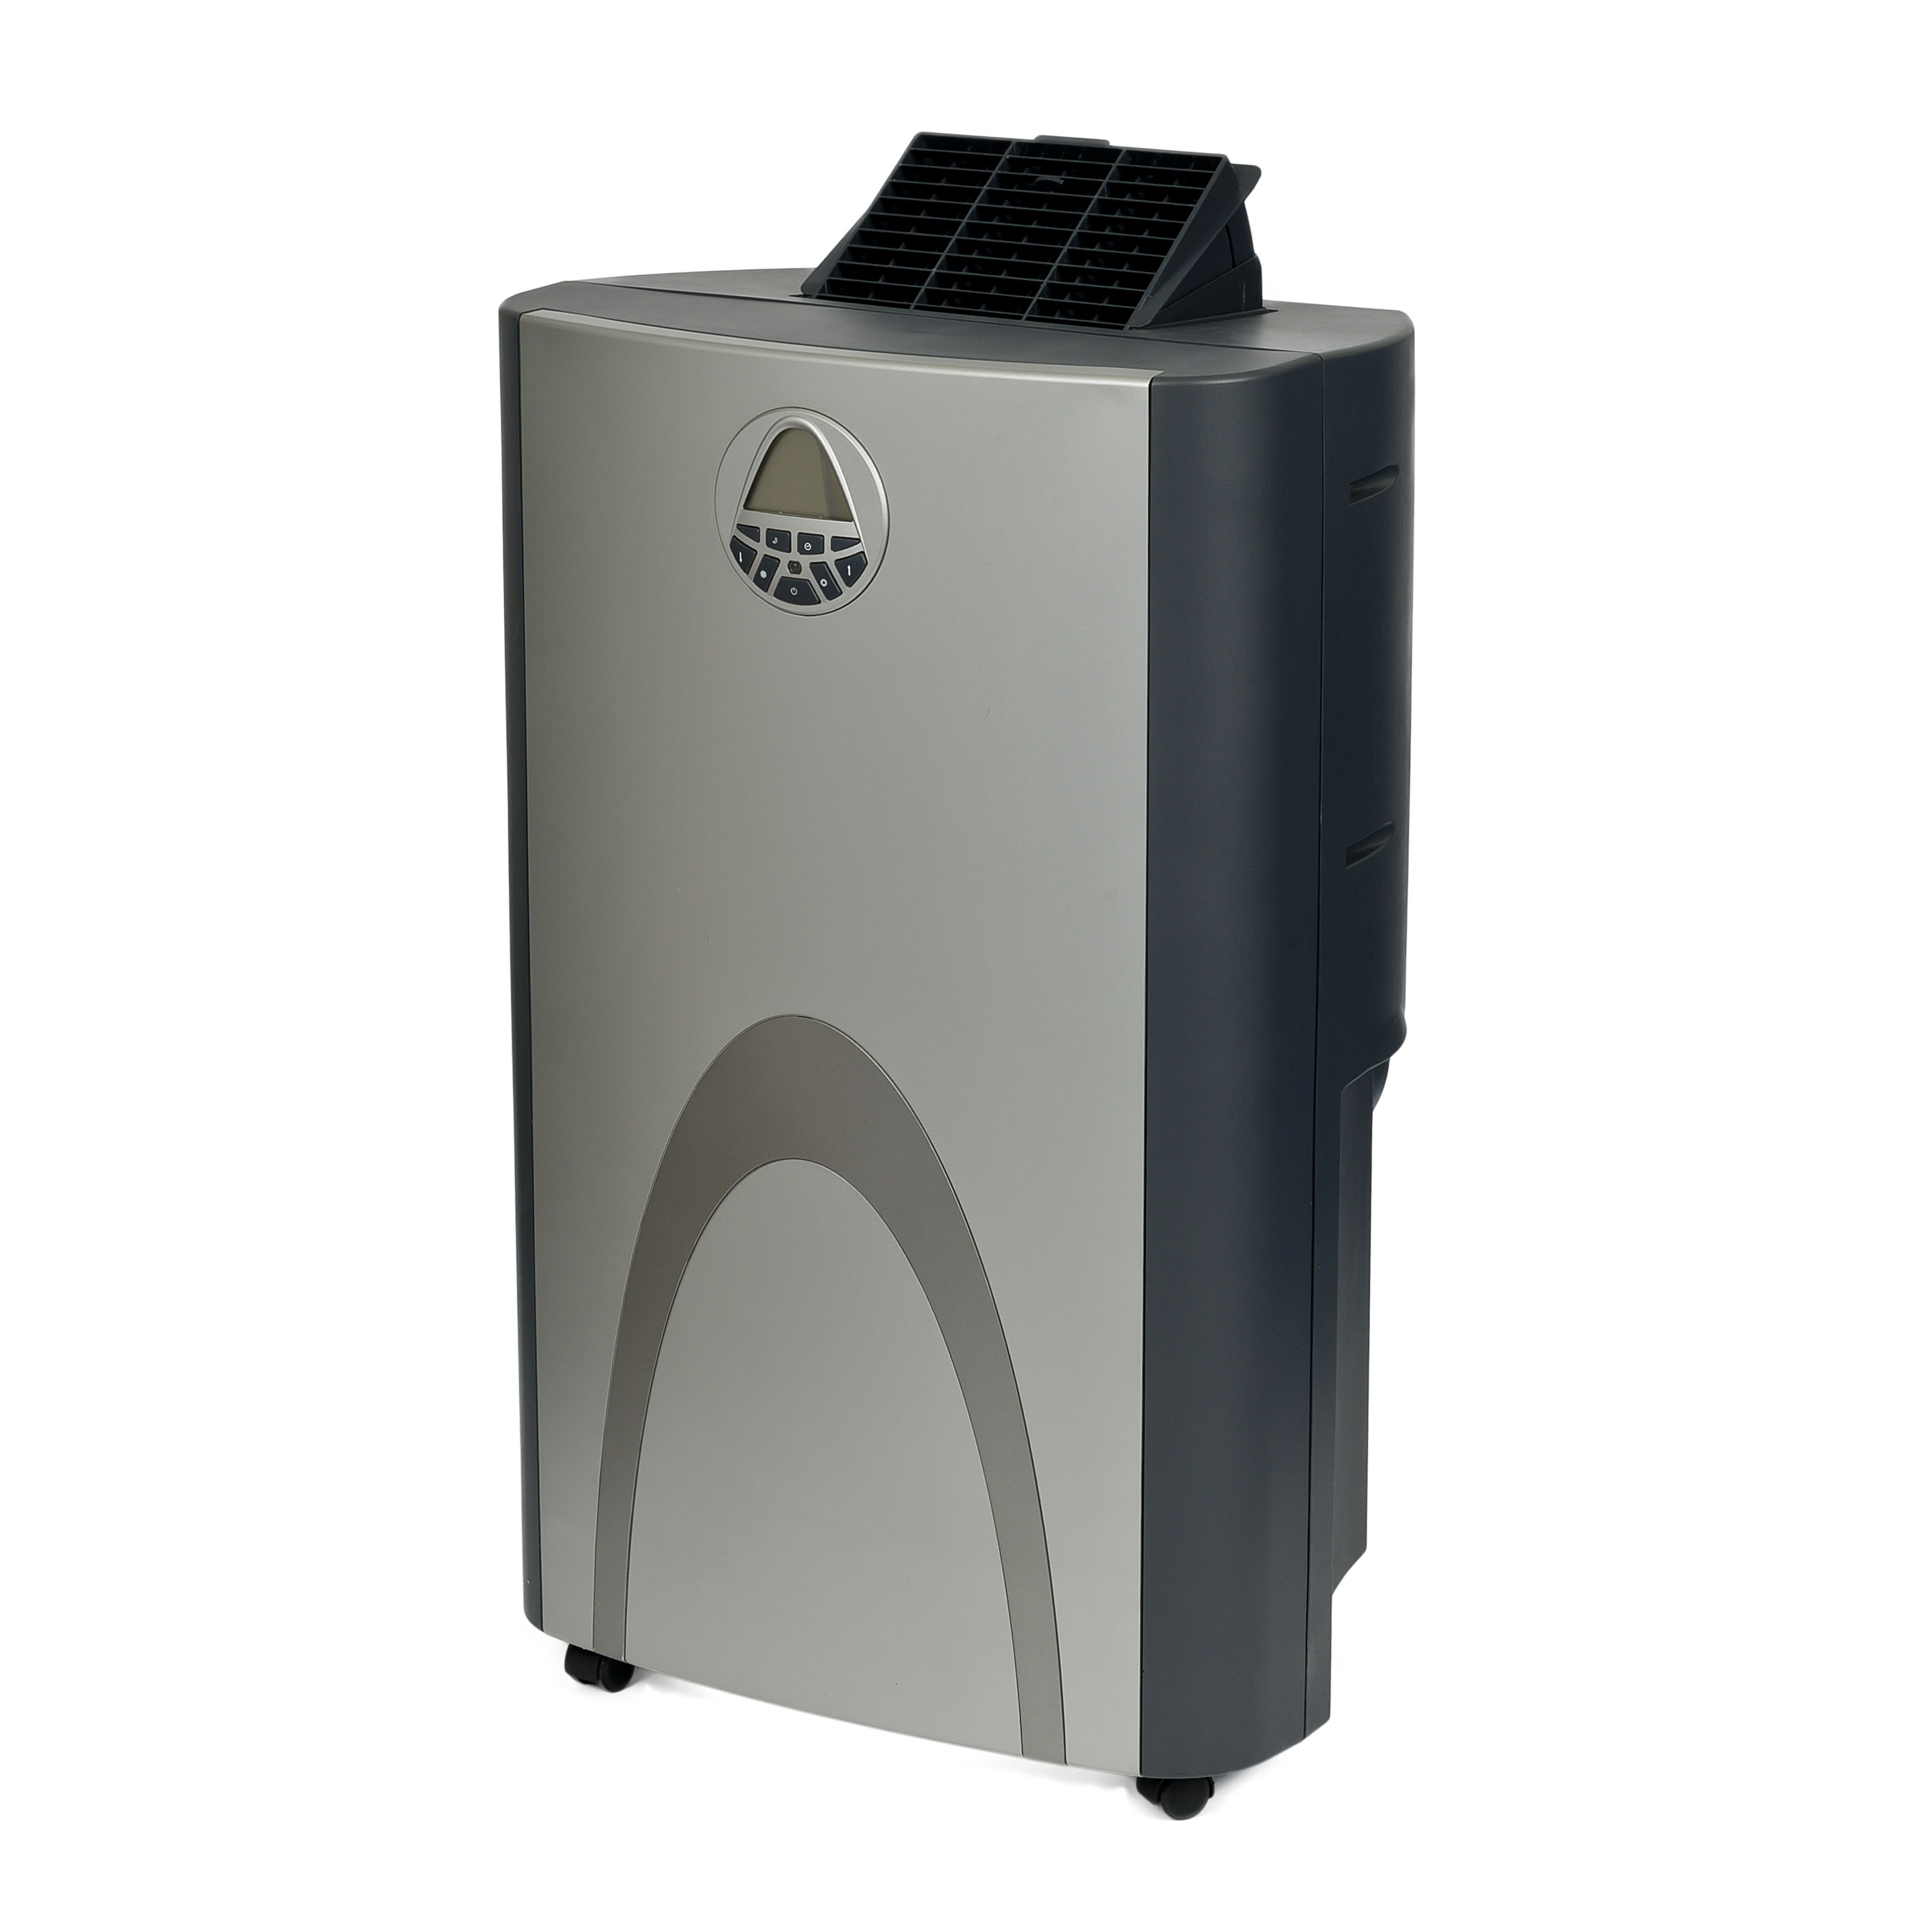 Amcor 3.5kW Hire Portable Air Conditioner Same Day Delivery #2C3236